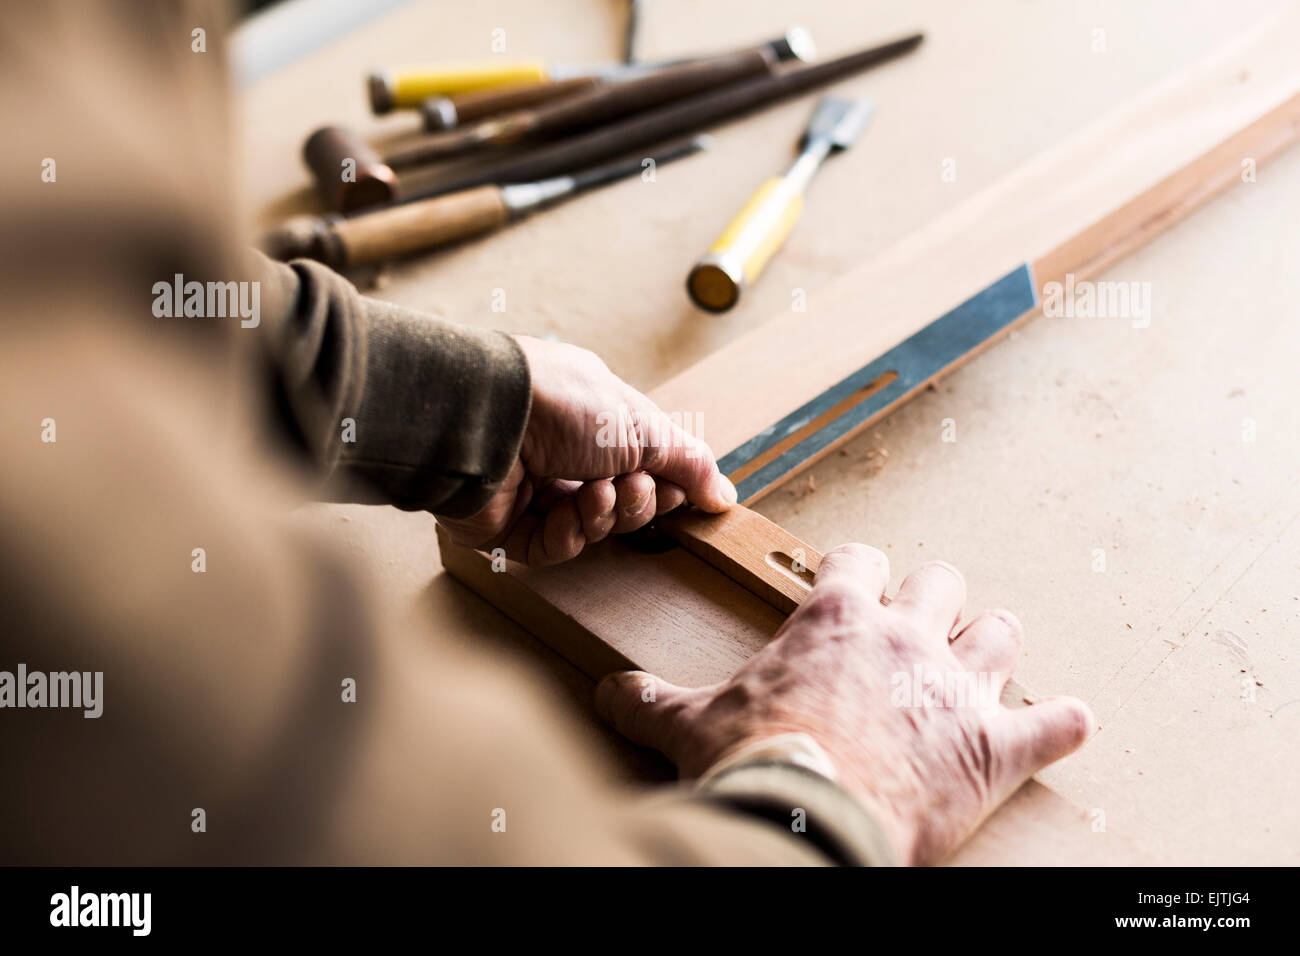 t bevel stock photos & t bevel stock images - alamy